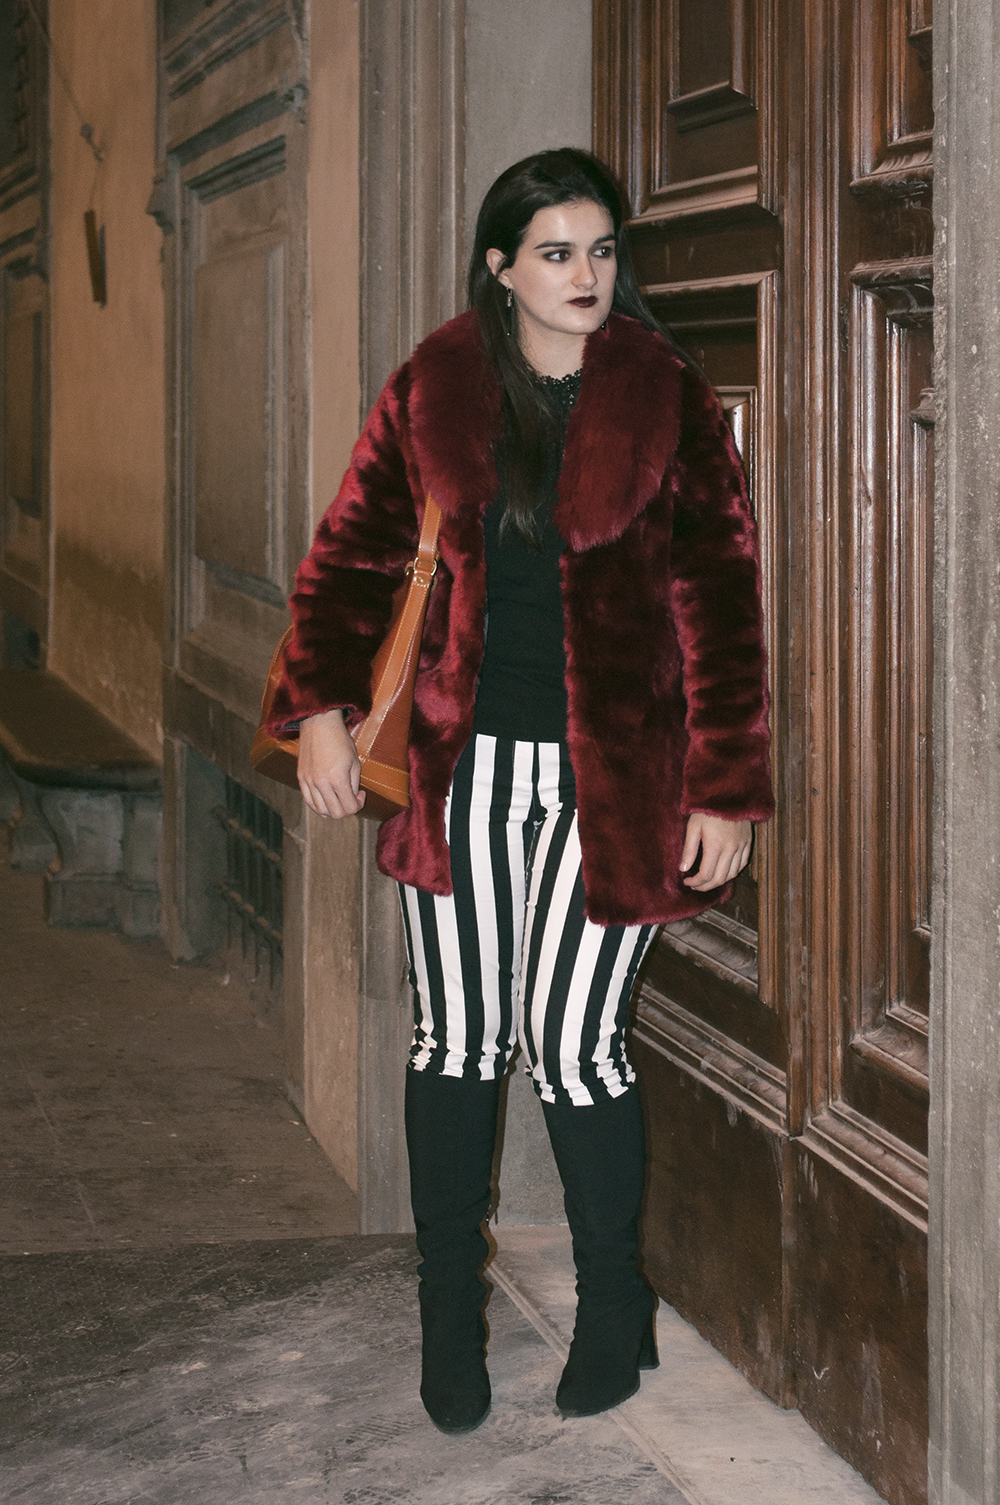 something fashion blogger influencer streetstyle spain firenze italianbloggers galeria degli uffizi fur coat lightinthebox collaboration halloween_0273